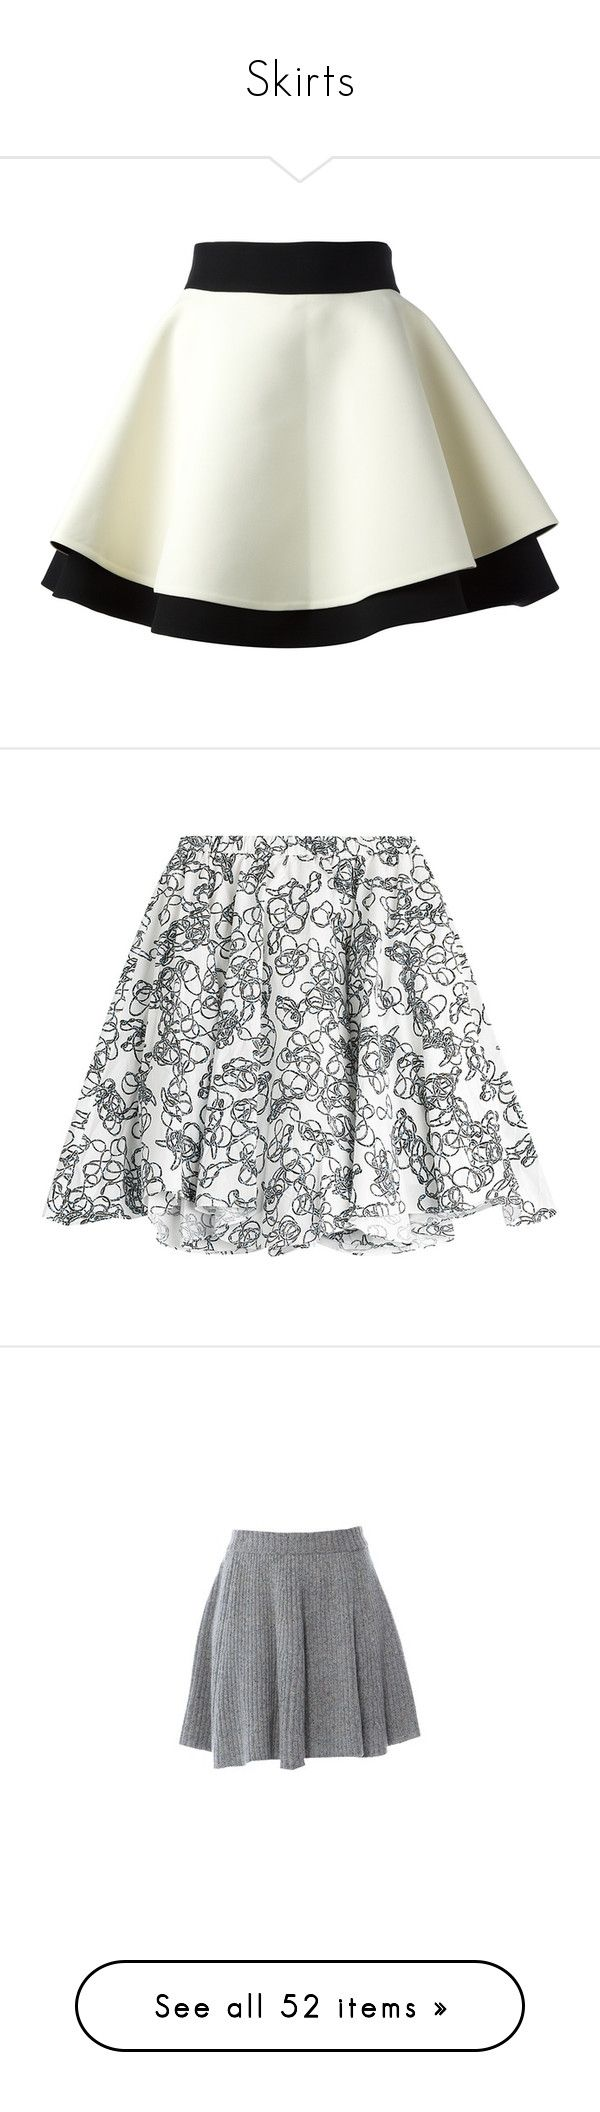 """""""Skirts"""" by isthelastofus ❤ liked on Polyvore featuring skirts, bottoms, saias, faldas, high-waisted skirts, double layer skirt, high-waist skirt, white high waisted skirt, layered skirt and day skirts"""